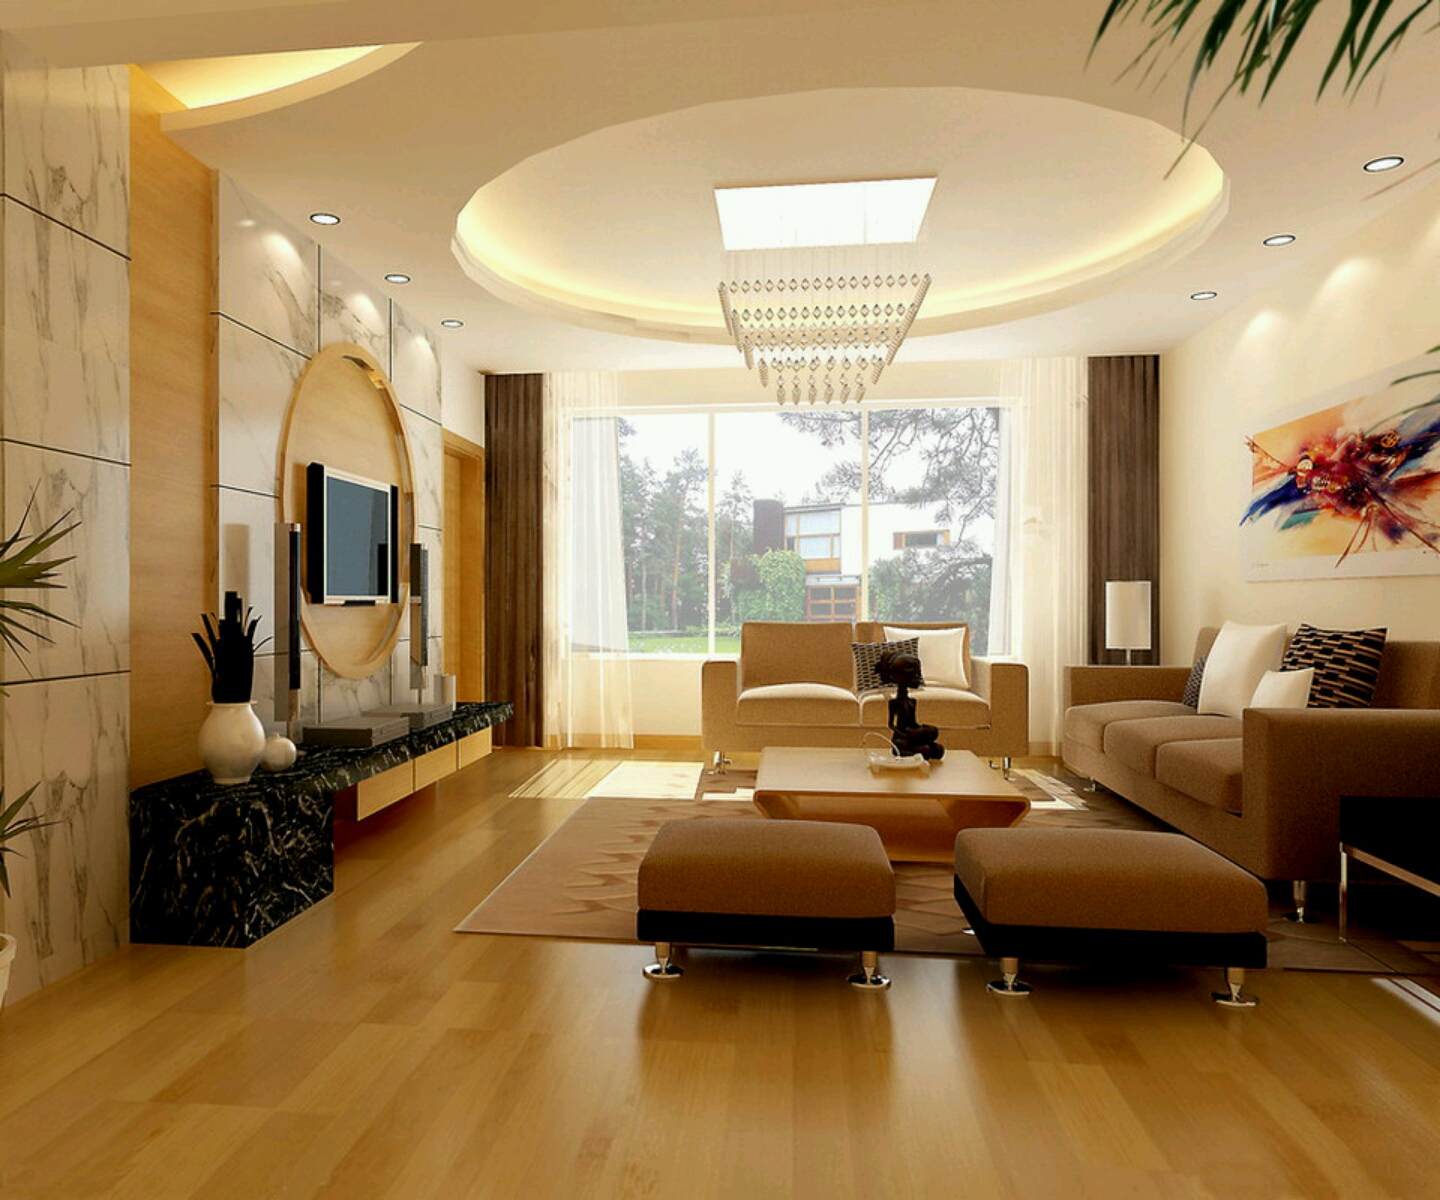 Modern interior decoration living rooms ceiling designs for Pictures of decorated living rooms